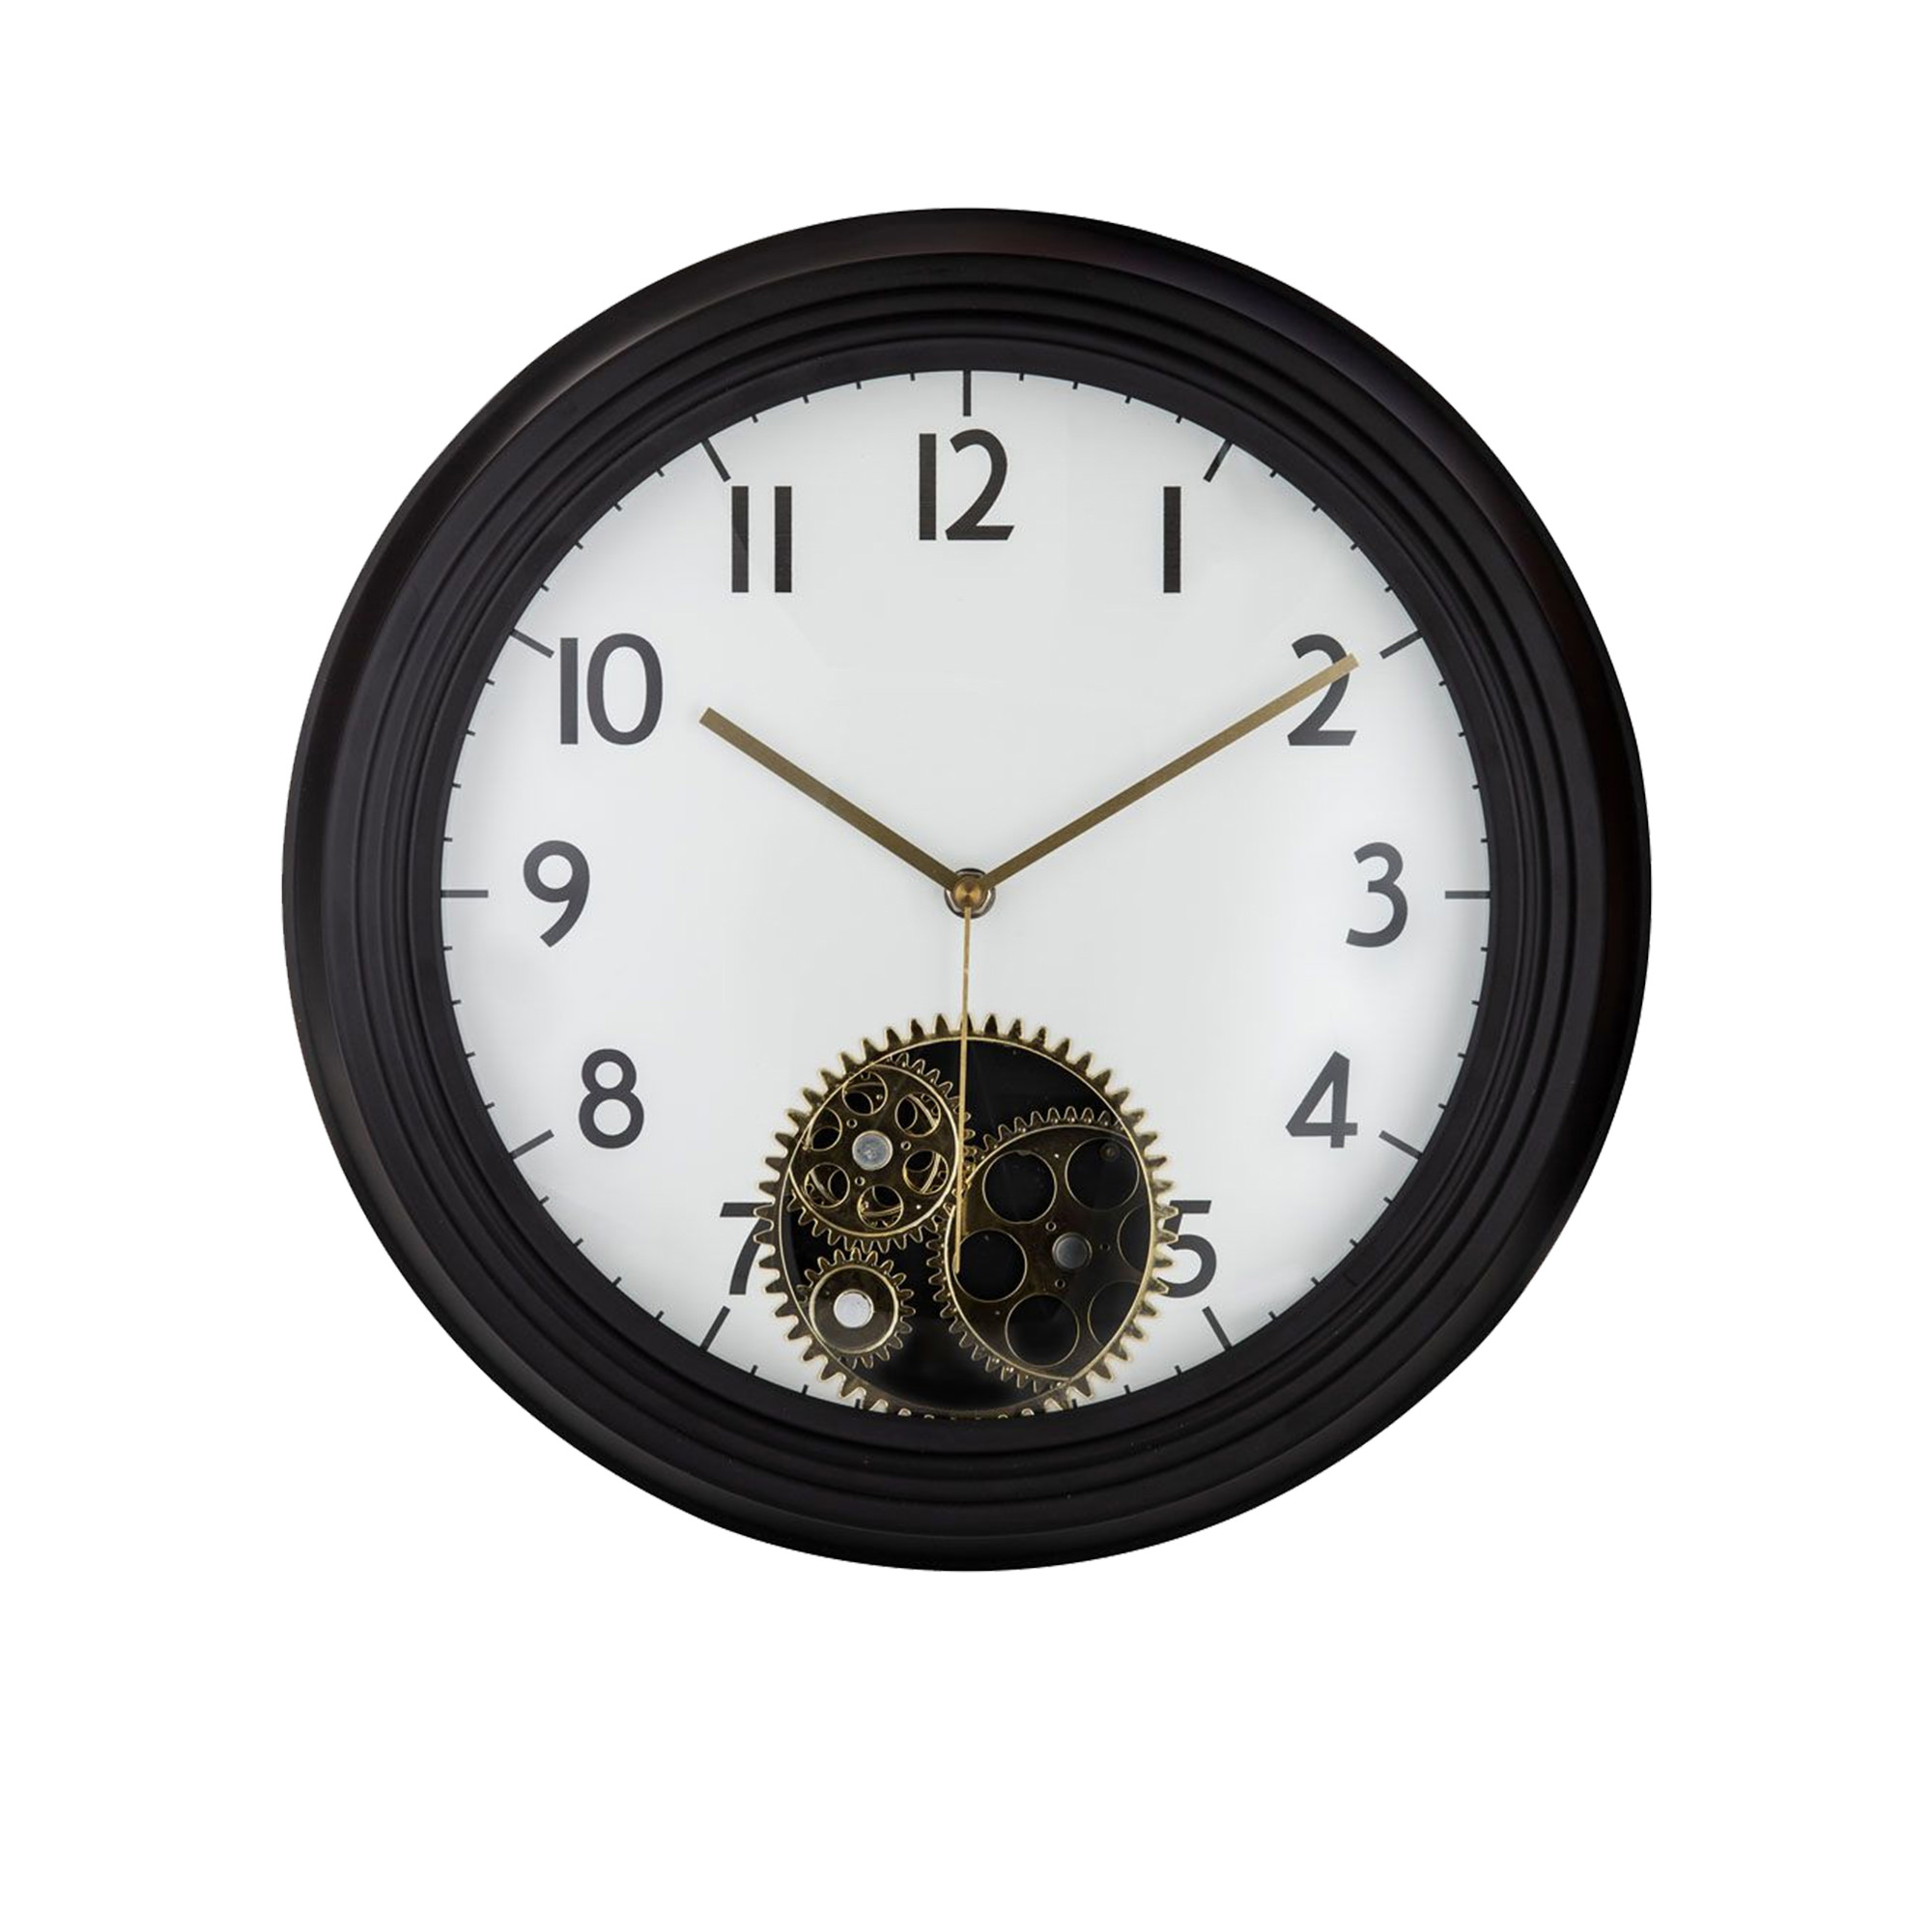 Amalfi Etan Wall Clock 38cm White, Black & Gold